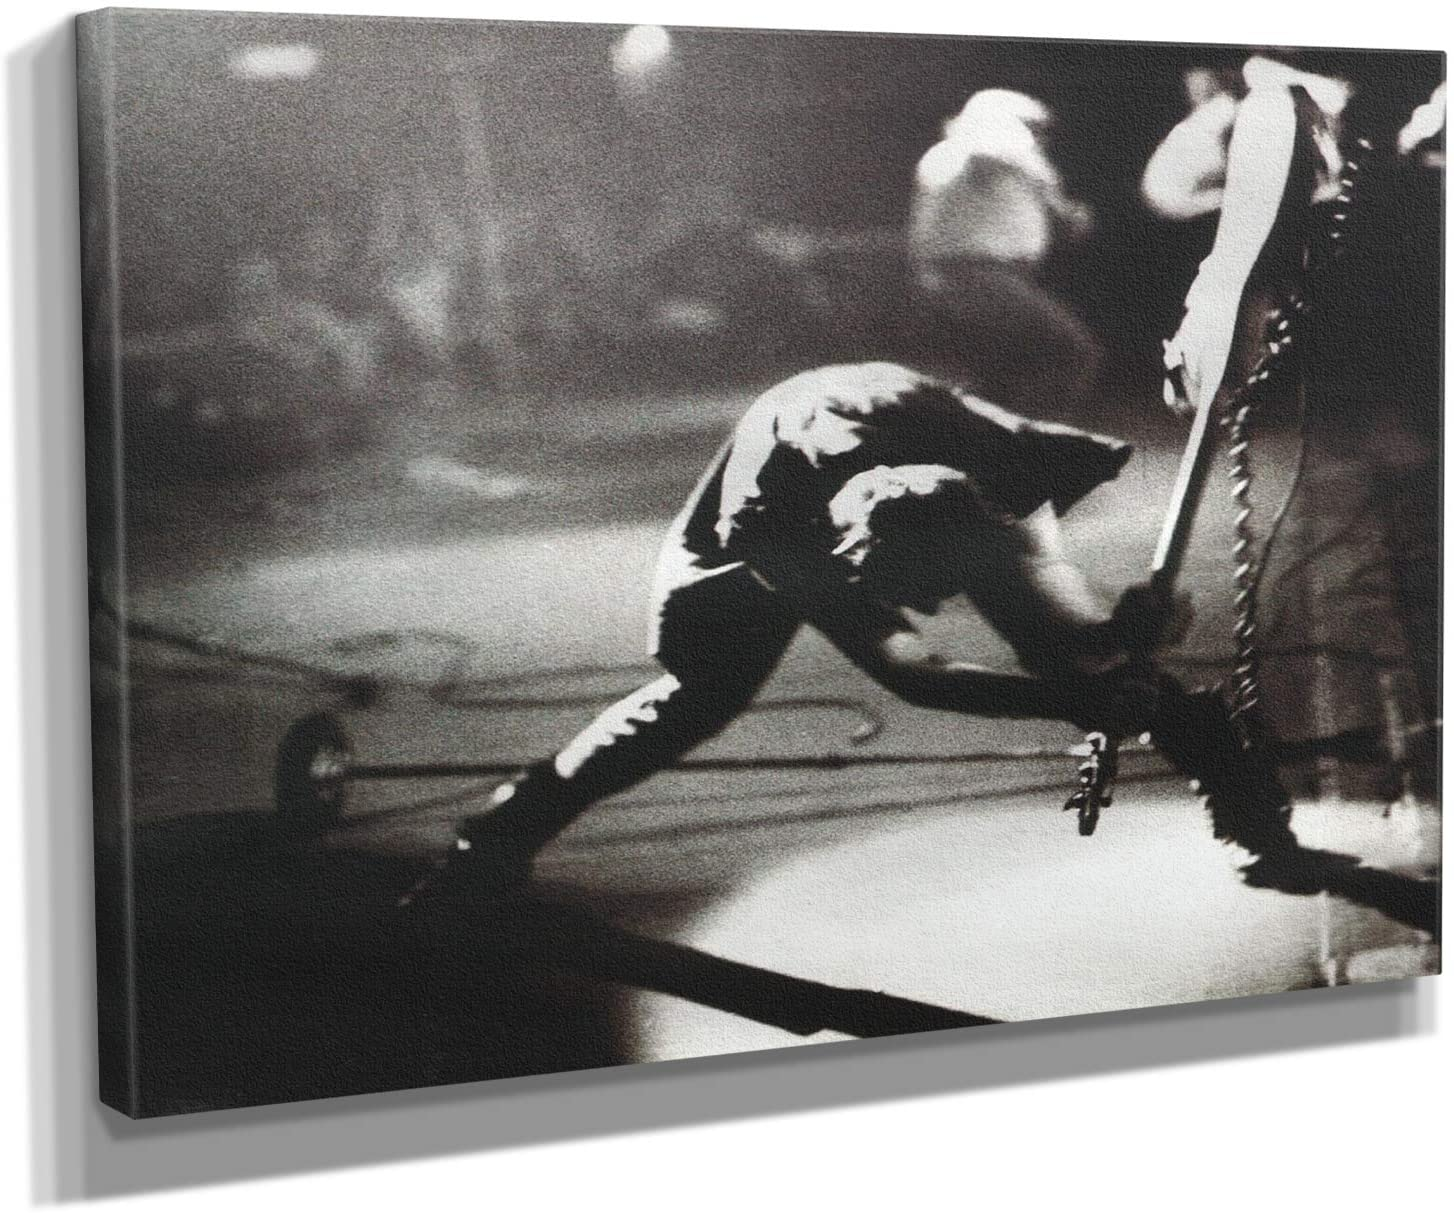 The Clash - London Calling - Canvas Wall Art Framed Print - Various Sizes (18in x 24in Gallery Wrapped)